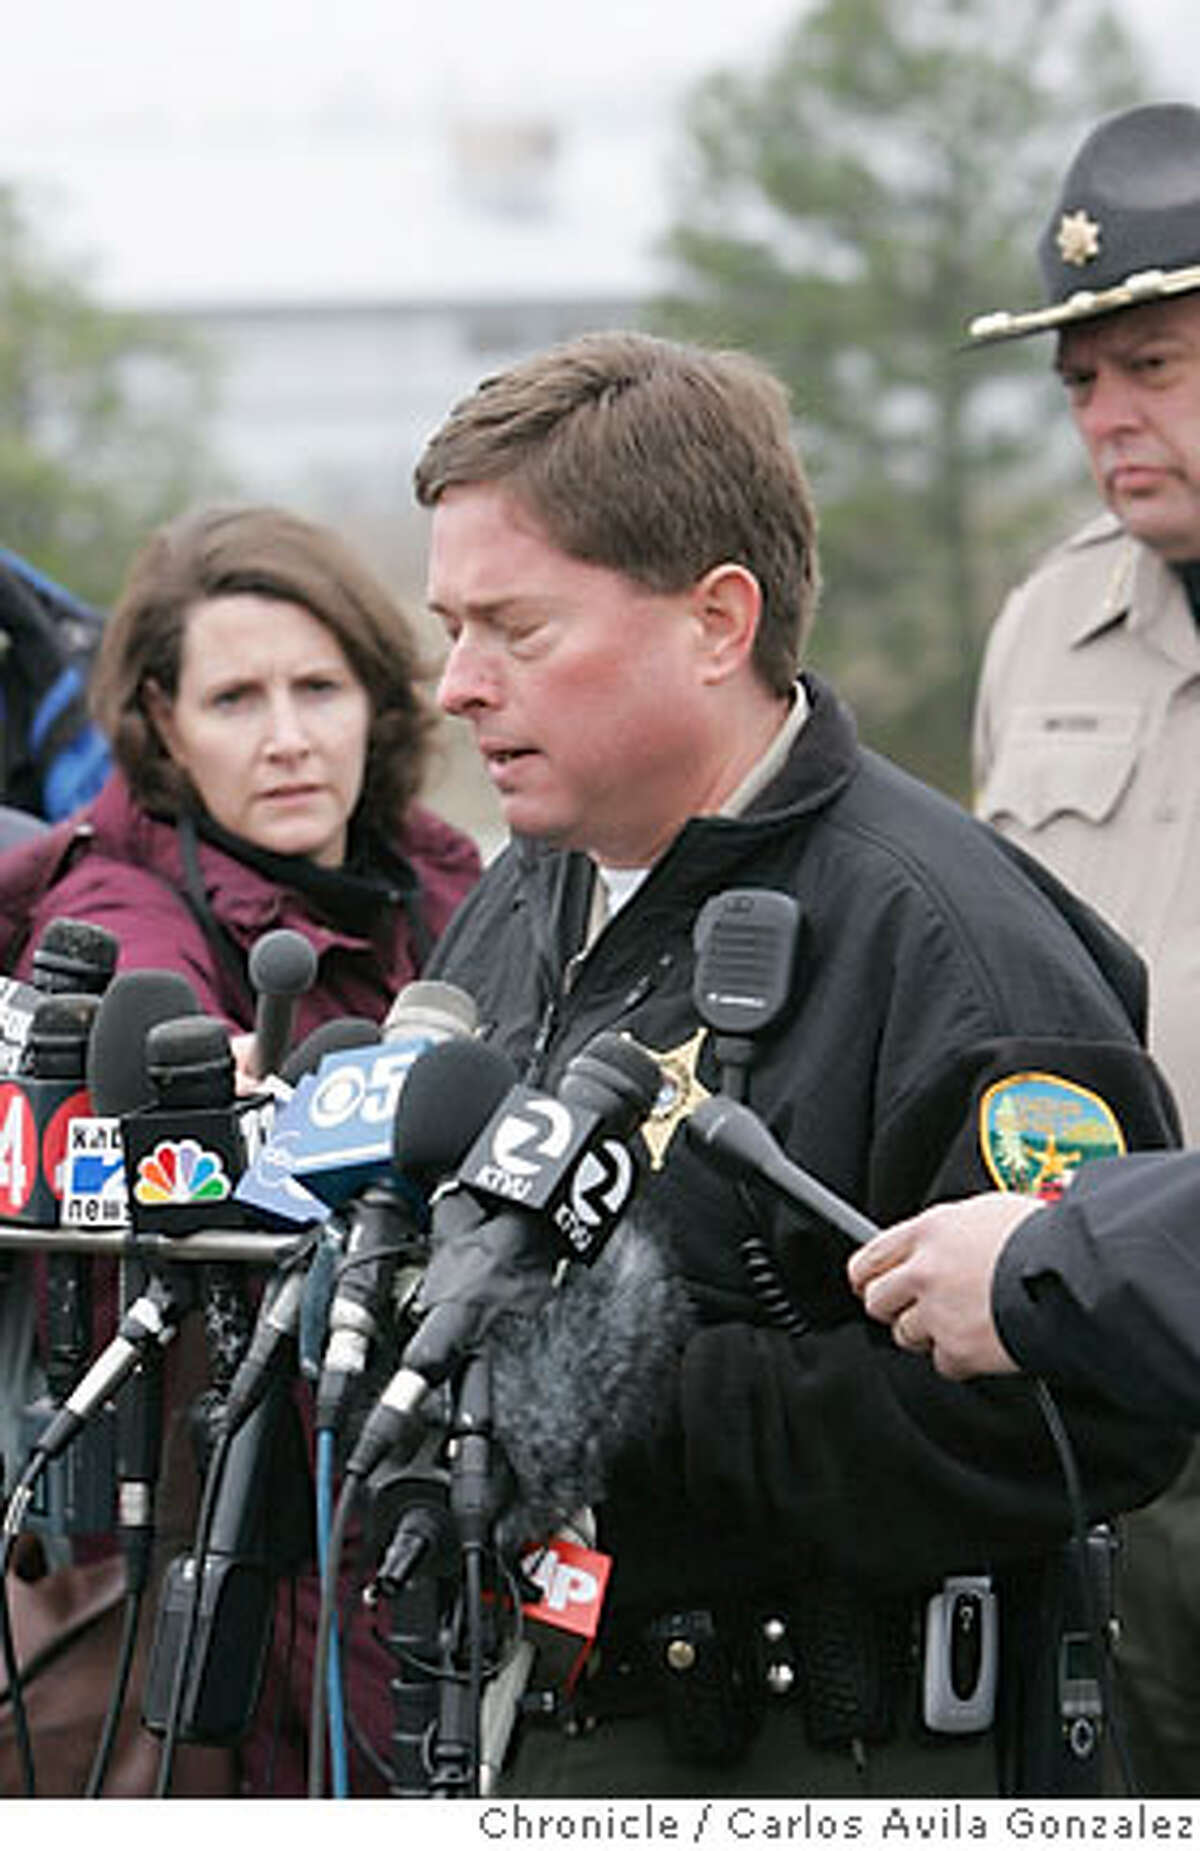 Josephine County Undersheriff Brian Anderson closes his eyes before turning away from the television cameras after it was announced that the body of James Kim had been located by search and rescue personnel. Anderson could not finish his statement, appearing upset by the news. Local and state authorities announced that their search for James Kim had concluded on Wednesday, December 6, 2006, after his body was discovered by search and rescue personnel. The San Francisco man whose family was rescued Monday after they were lost in the mountains outside of Merlin, Or., set out on foot to try to find help, but died as he attempted to bring assistance to his wife and two daughers. Photo by Carlos Avila Gonzalez/The San Francisco Chronicle Photo taken on 12/6/06, in Merlin, Or, USA. **All names cq (source)